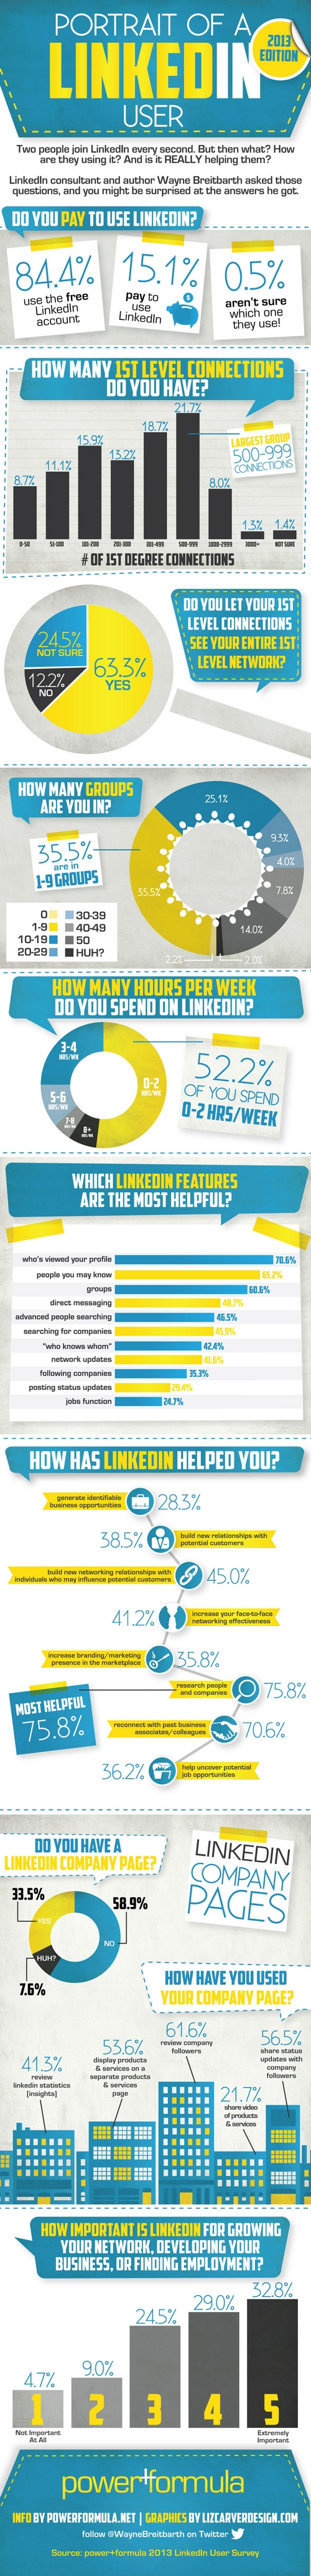 Infographic-portrait of a linkedin user